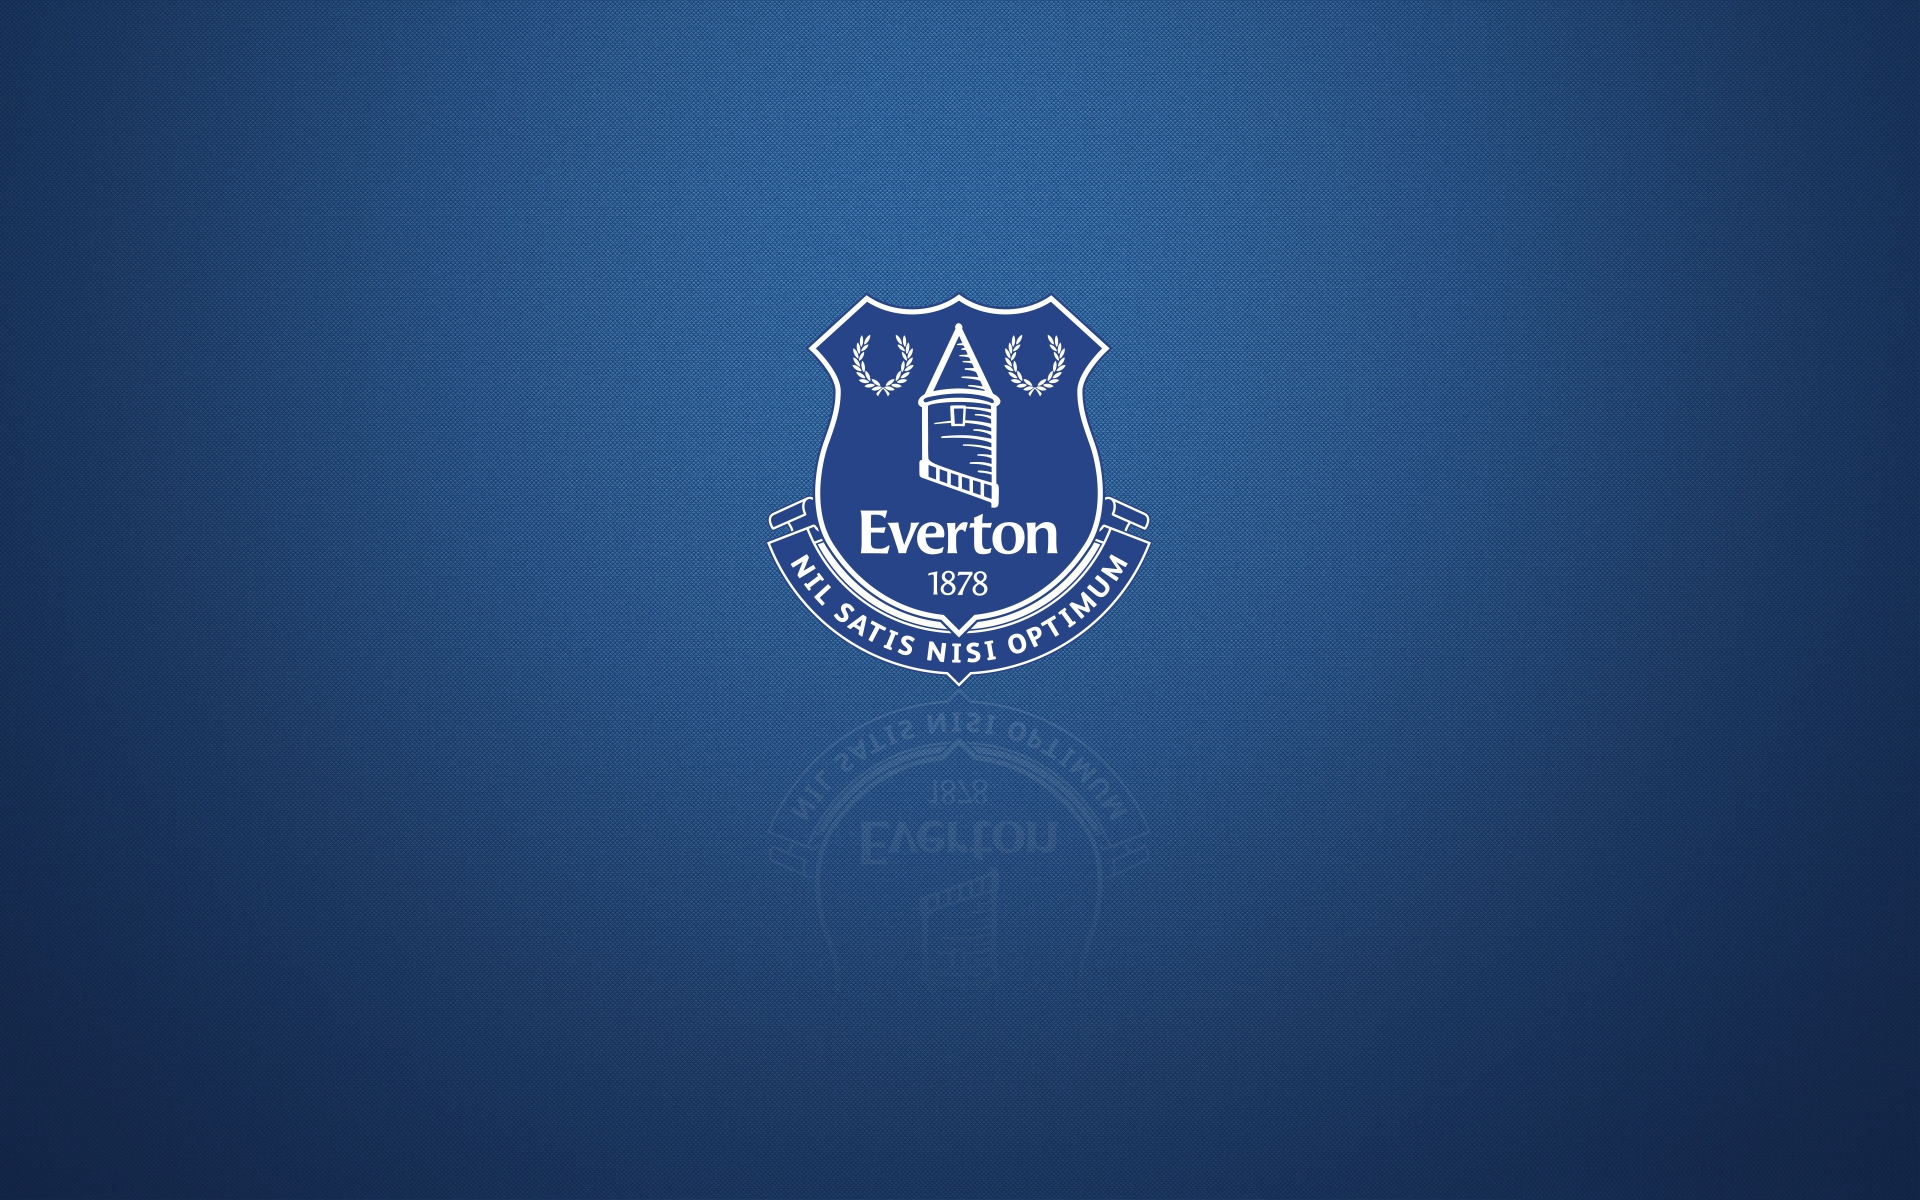 Everton Logos Download